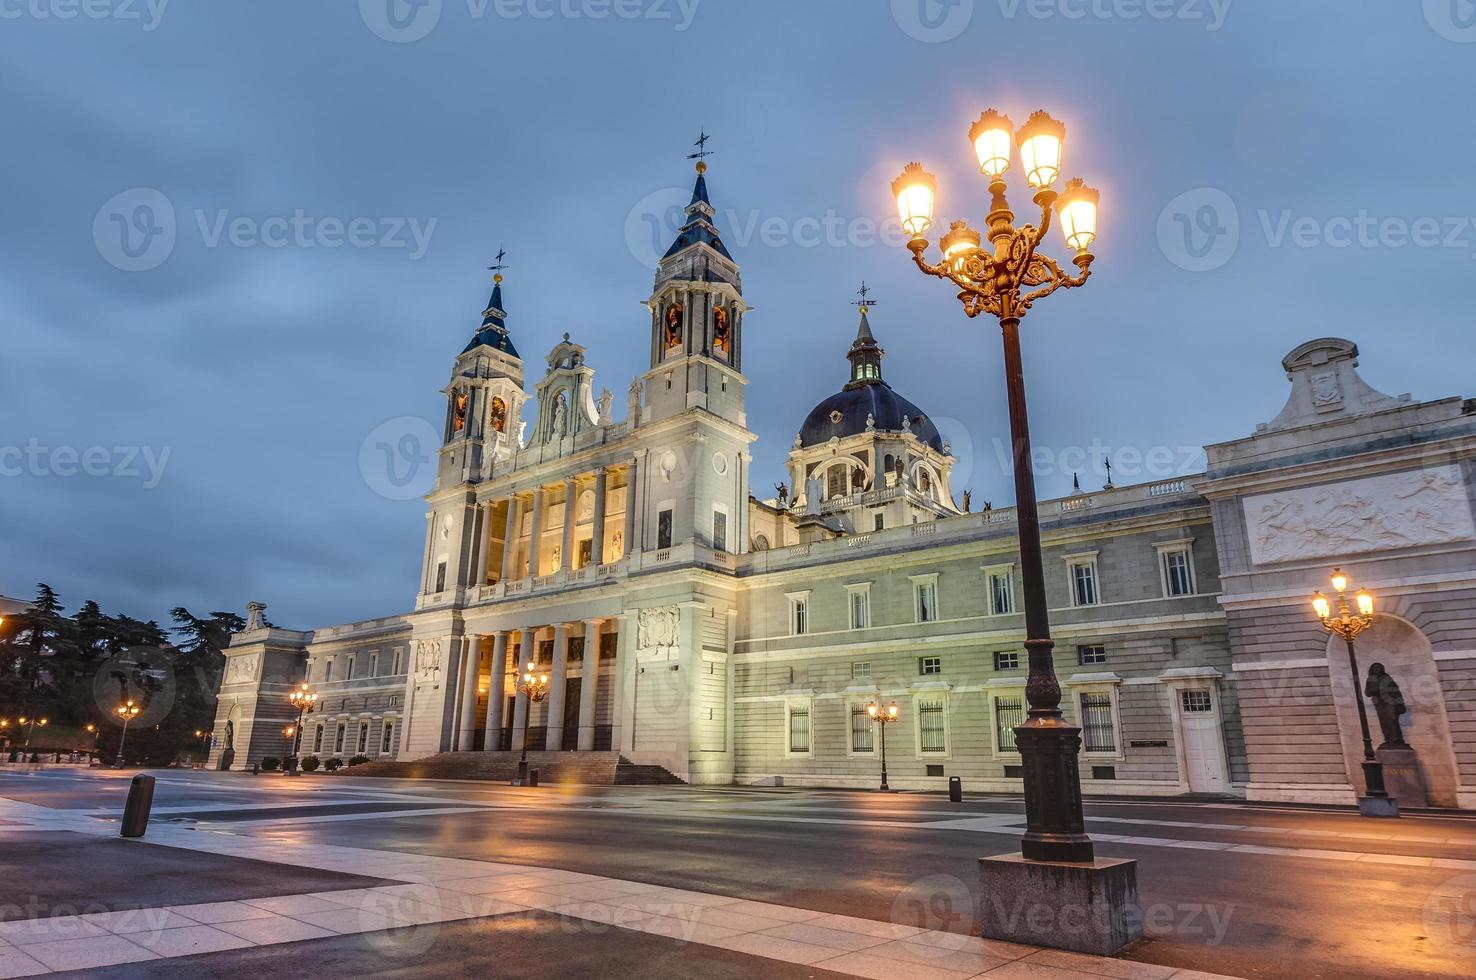 Almudena cathedral in Madrid, Spain. photo